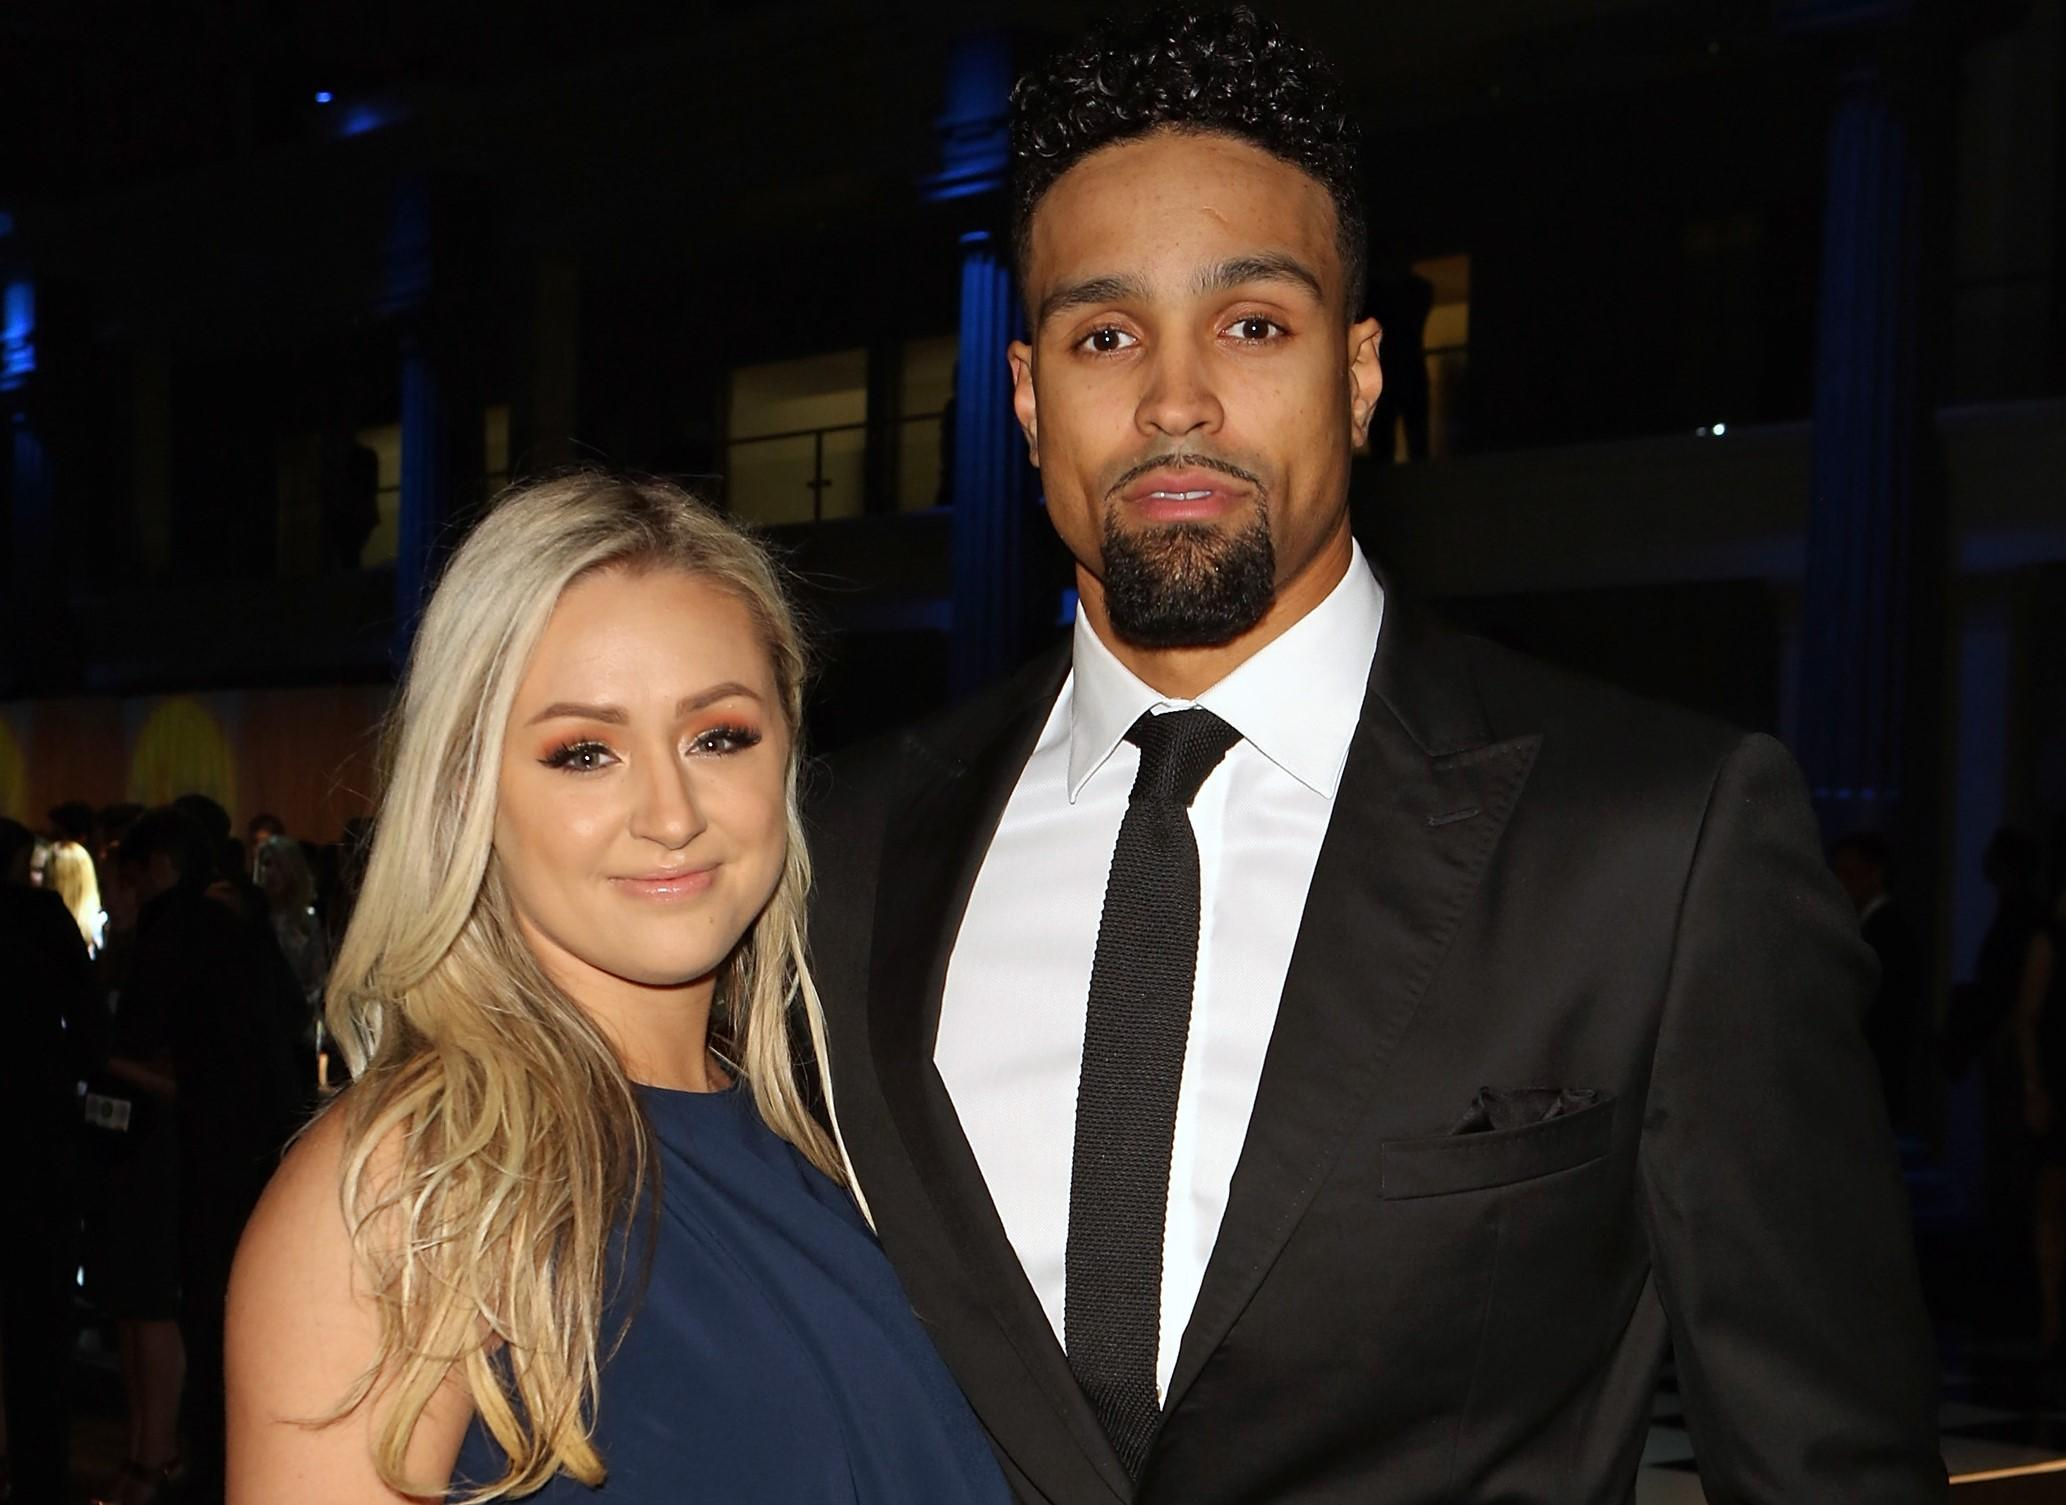 Ashley Banjo Posts Family Photo Amid Torrent Of Racist Abuse